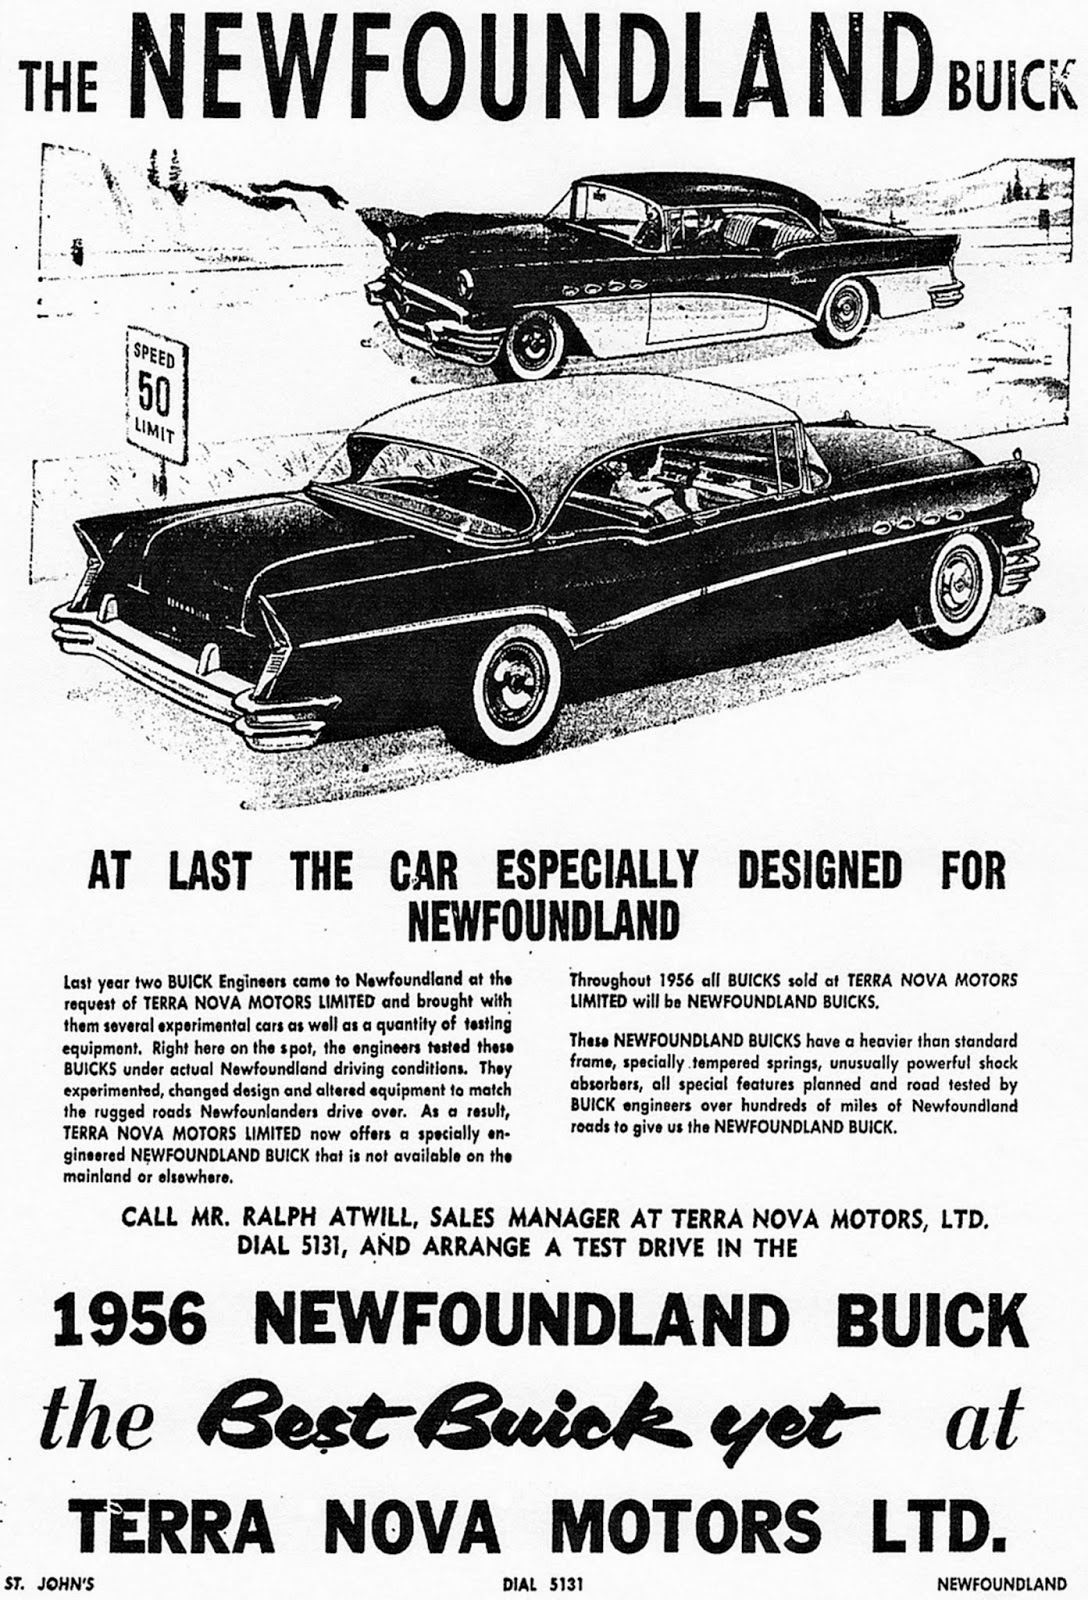 Old Cars Canada: 1956 Newfoundland Buick: For Townies & Baymen Only